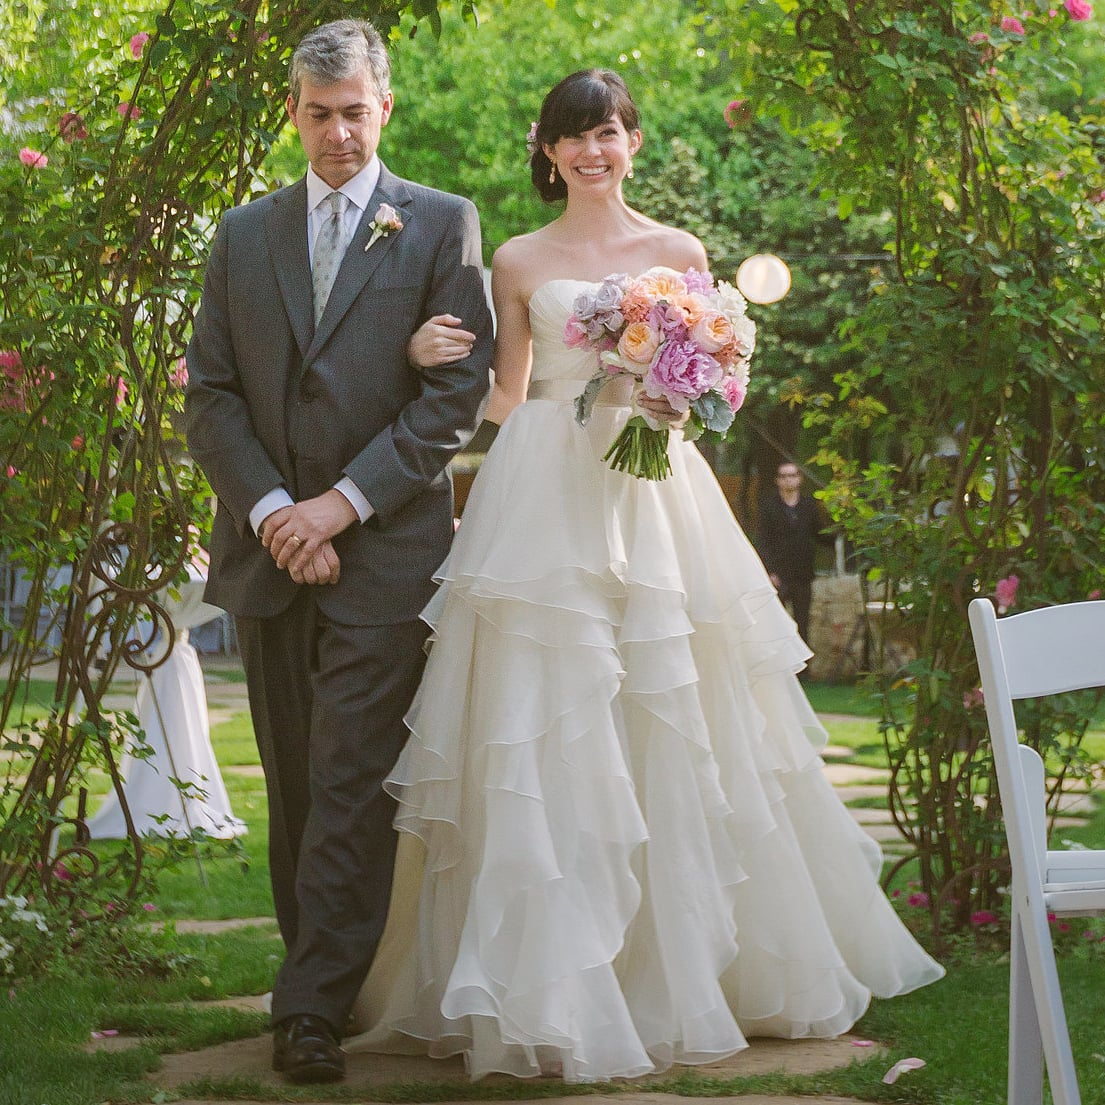 Wedding Processional Songs | POPSUGAR Entertainment